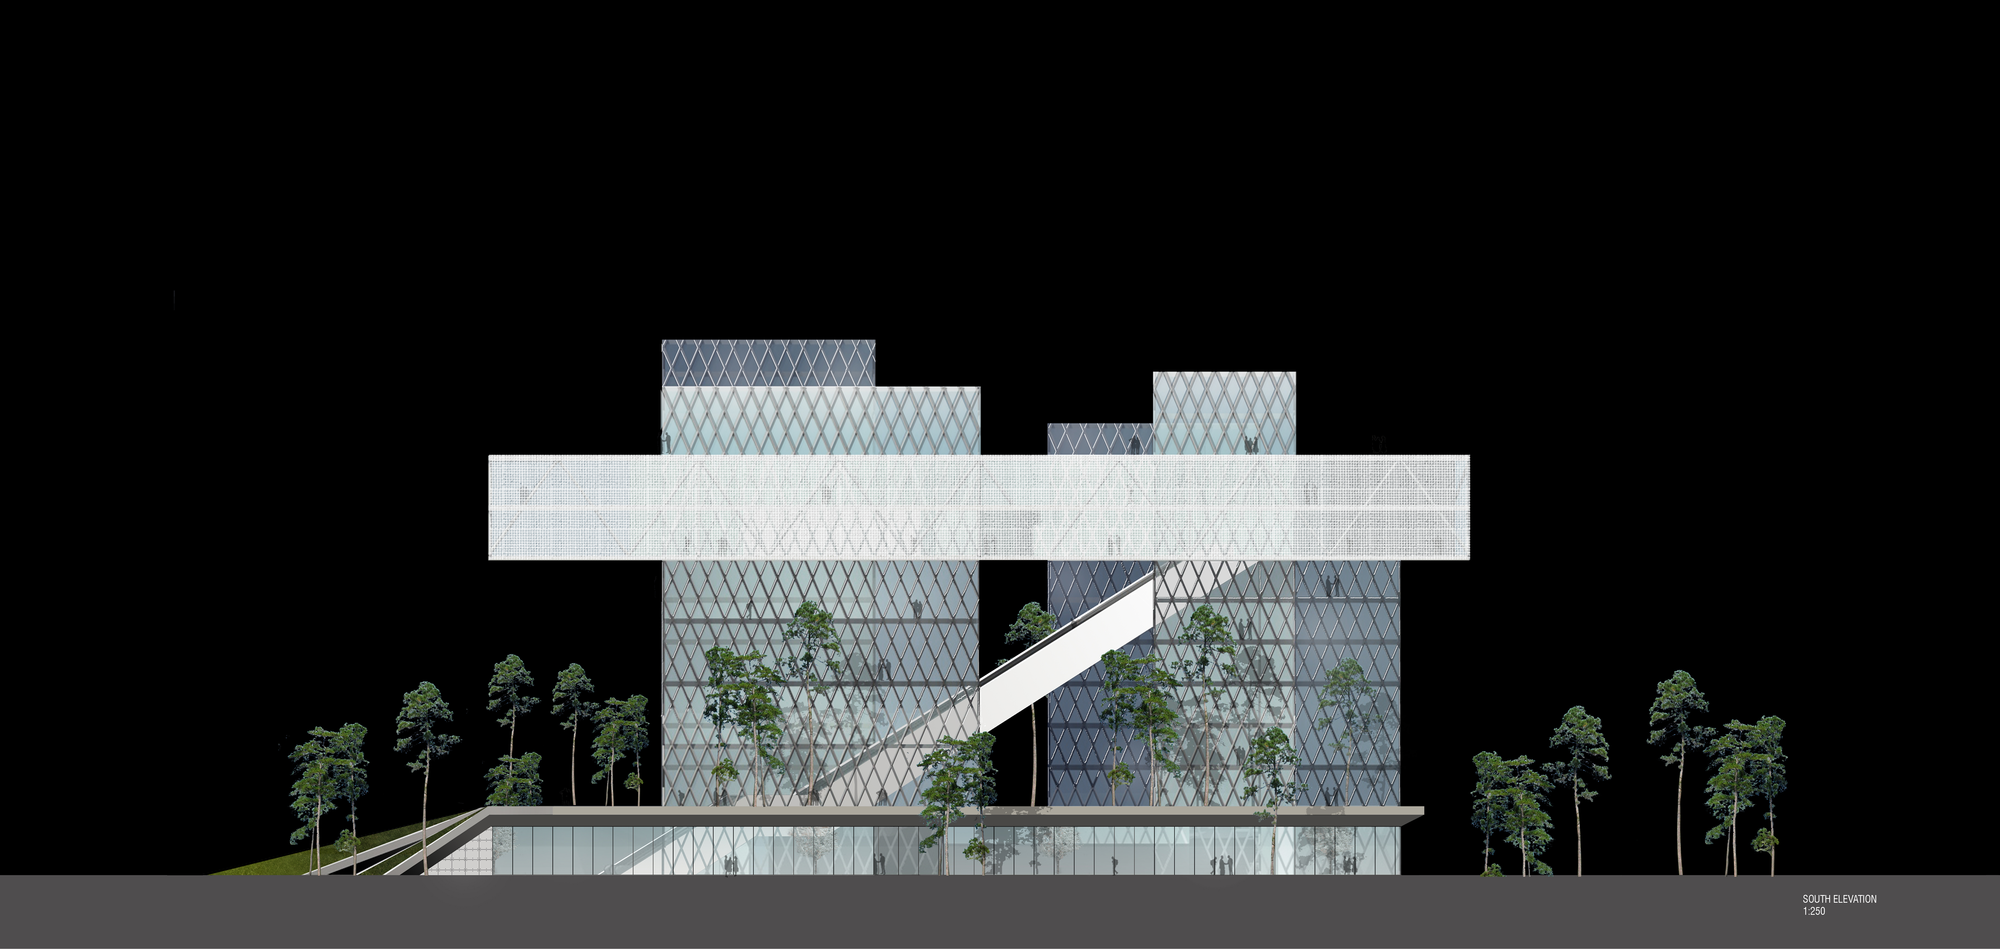 Architecture Photography Hong Kong Institute Of Design